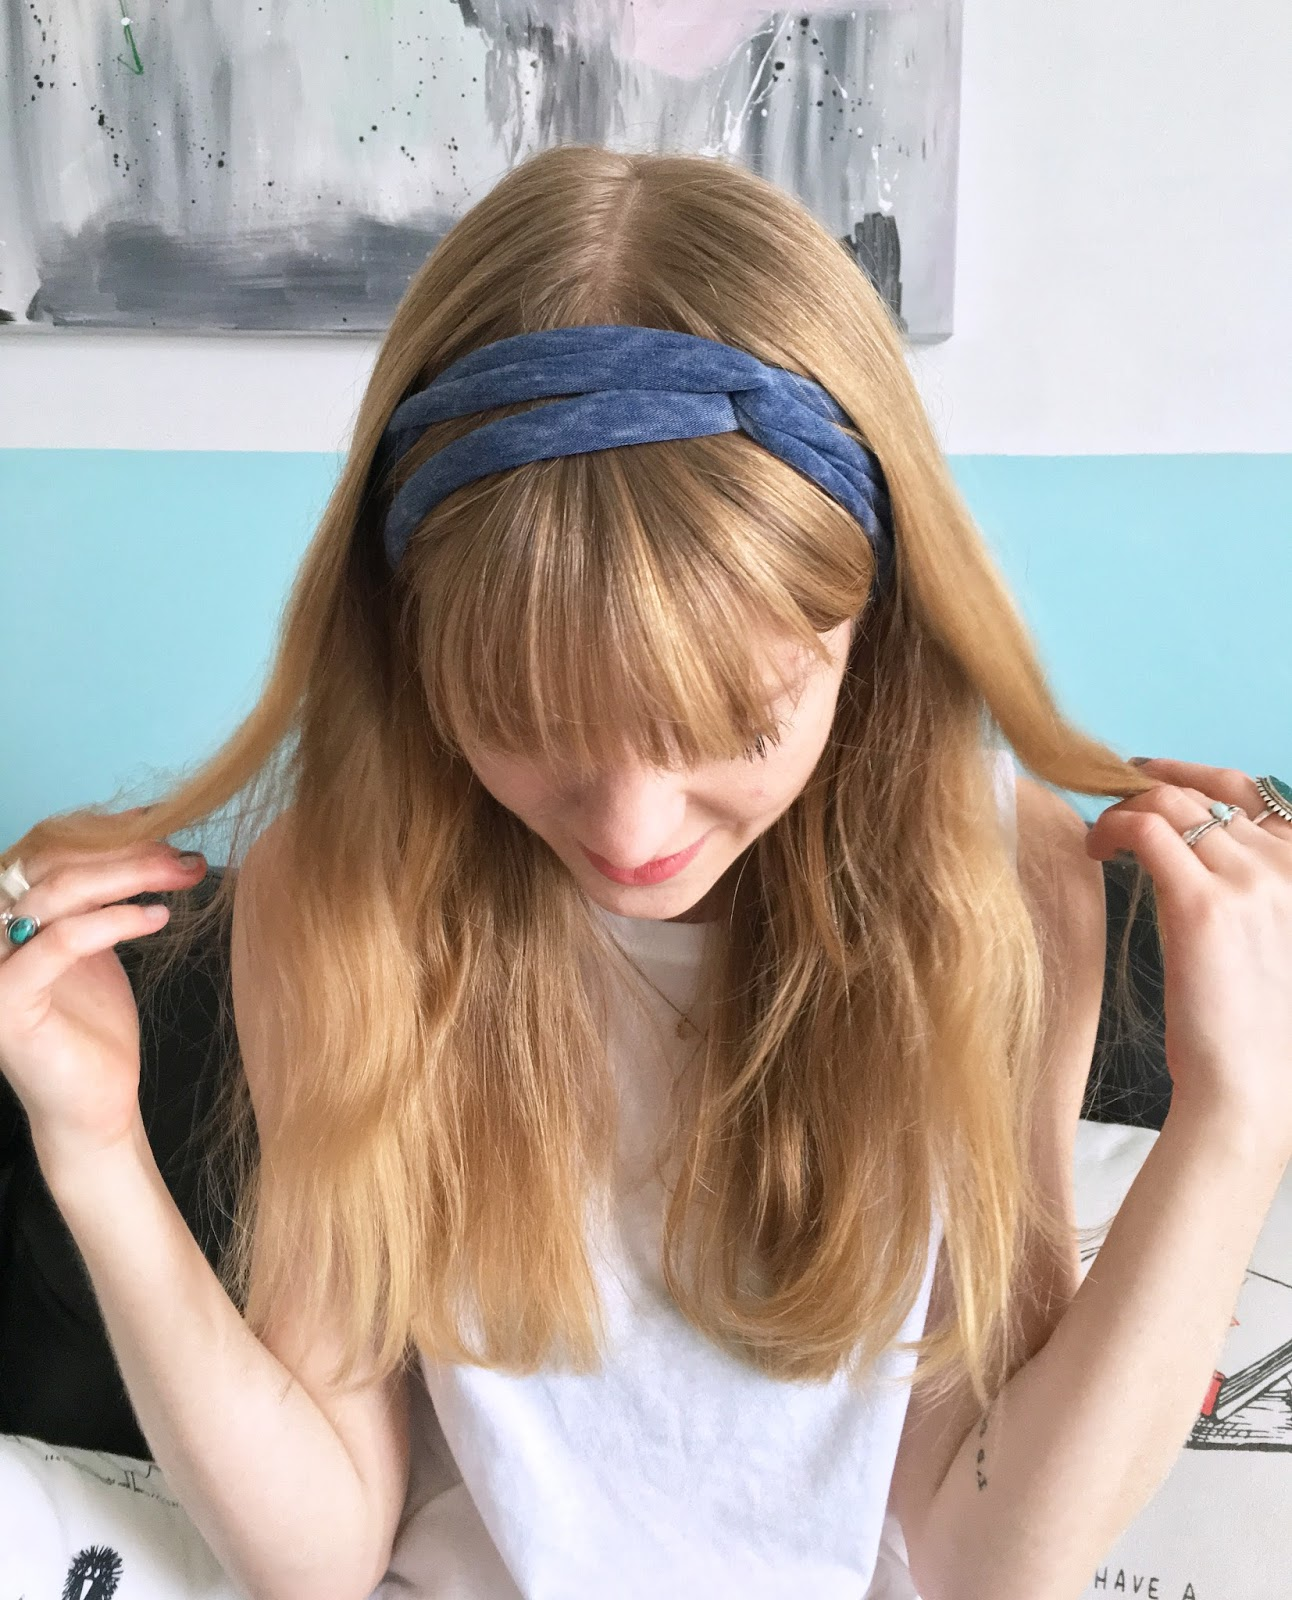 D.I.Y. No Sew Headband From an Old T-Shirt